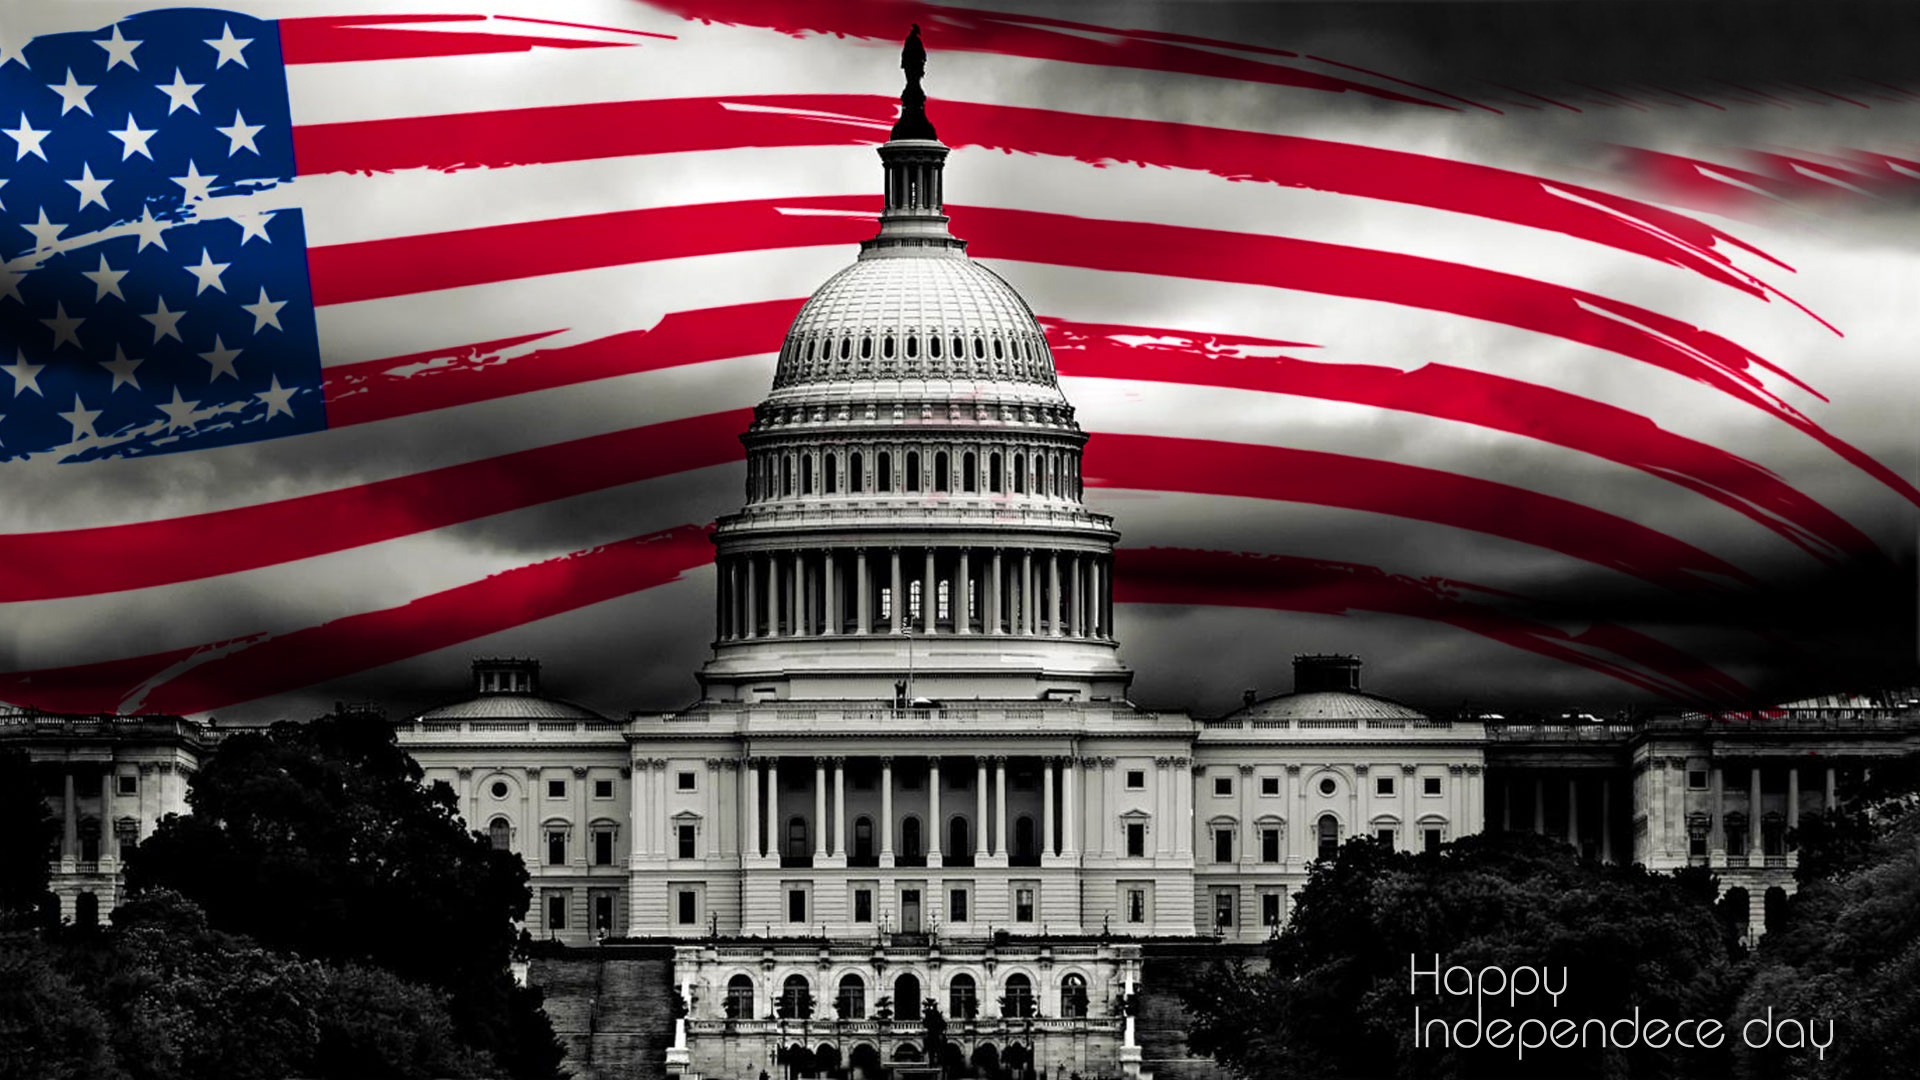 Americas Independence Day   Wallpaper High Definition High Quality 1920x1080